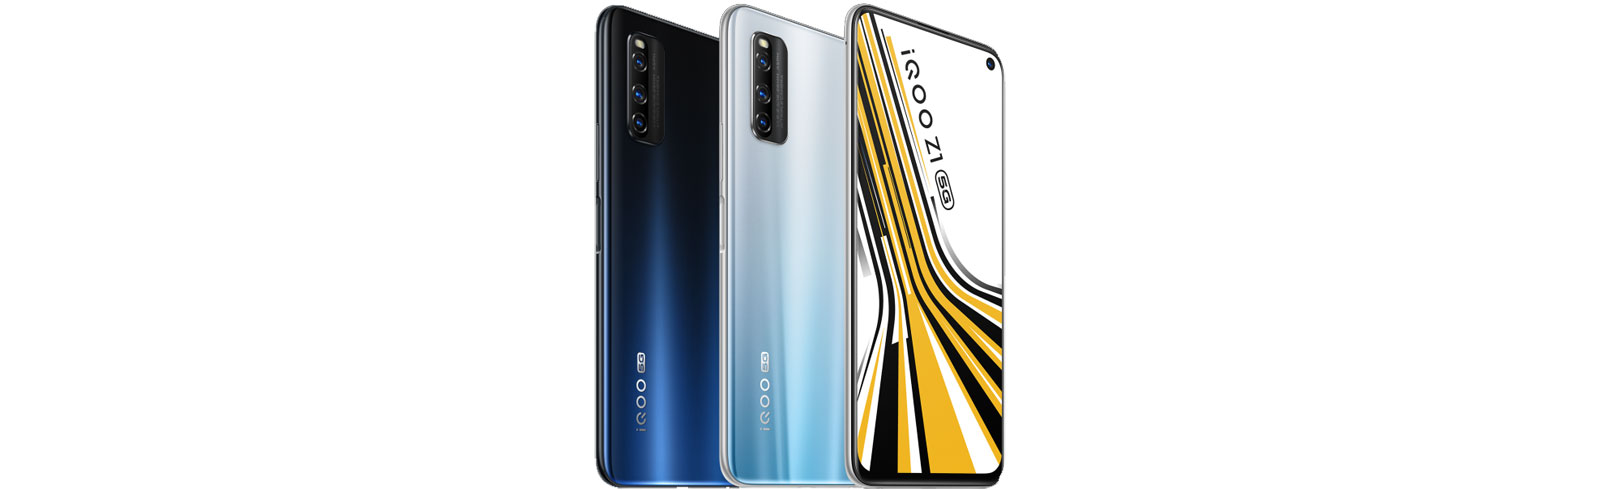 Vivo unveiled the iQOO Z1 5G with DImensity 1000+ chipset - specifications and prices